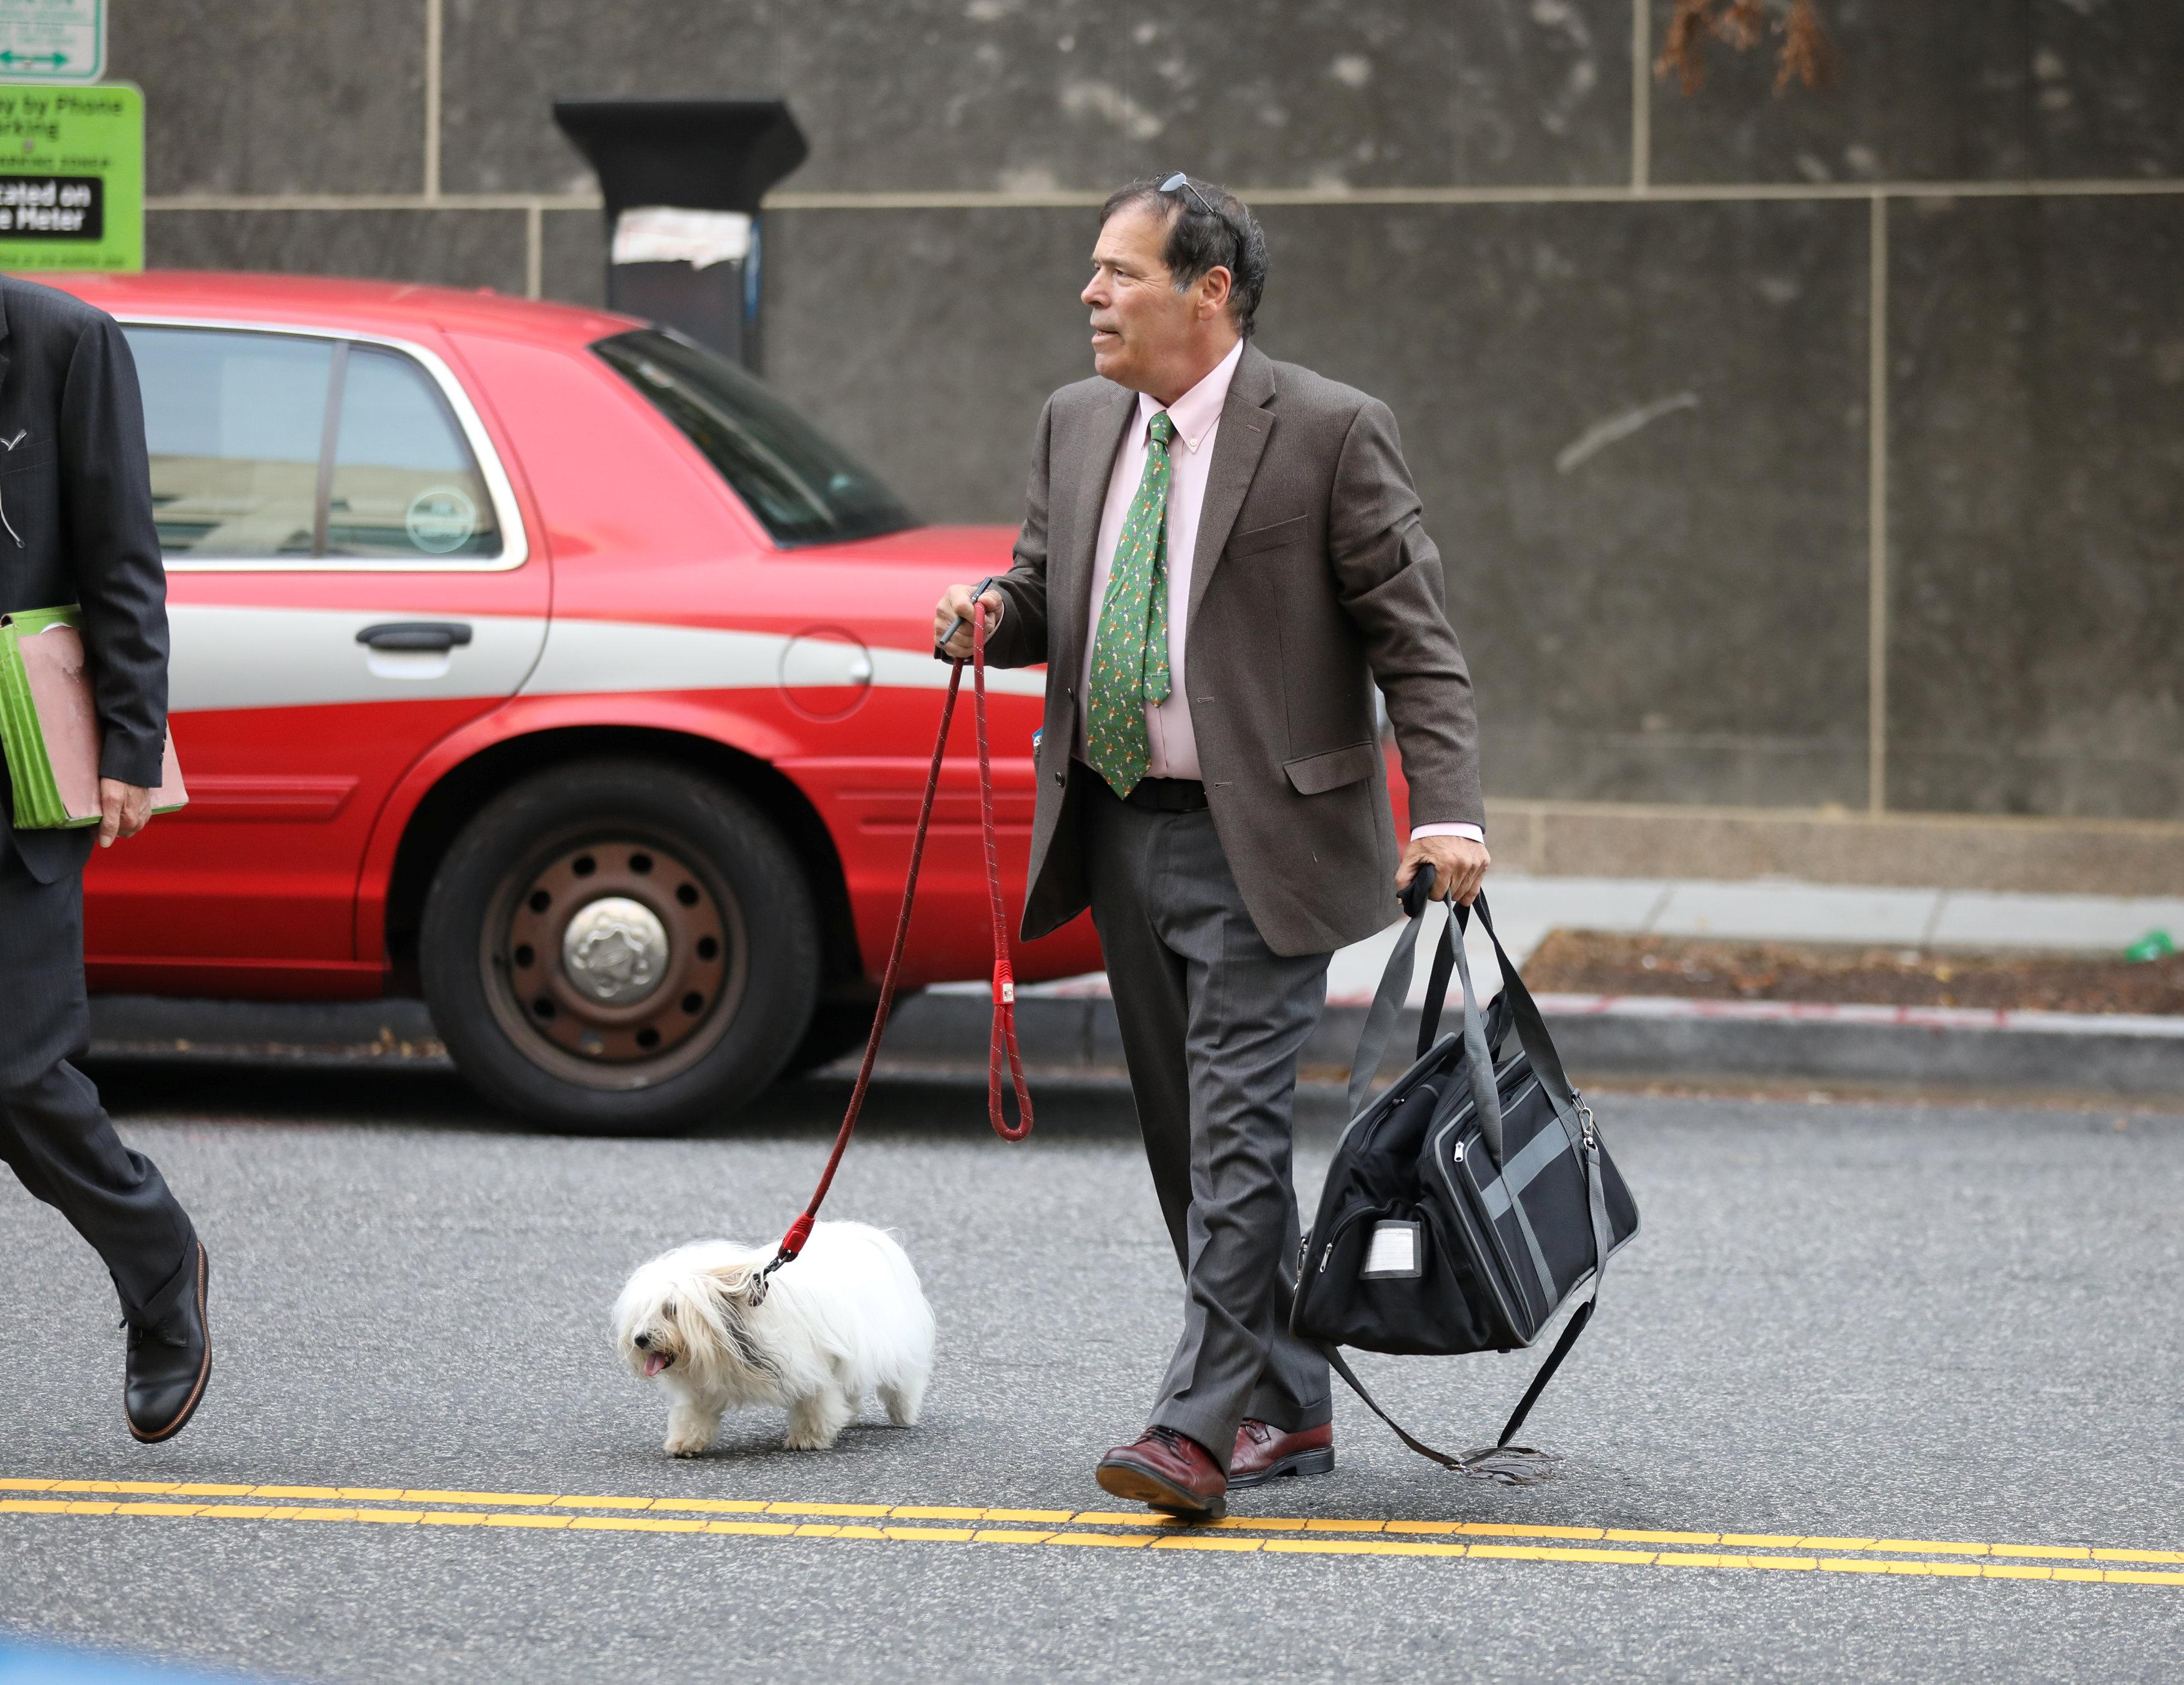 Randy Credico, an associate of former Trump campaign adviser Roger Stone, walks with his pet dog as he arrives to testify before the grand jury convened by Special Counsel Robert Mueller at U.S. District in Washington, U.S., September 7, 2018. Chris Wattie